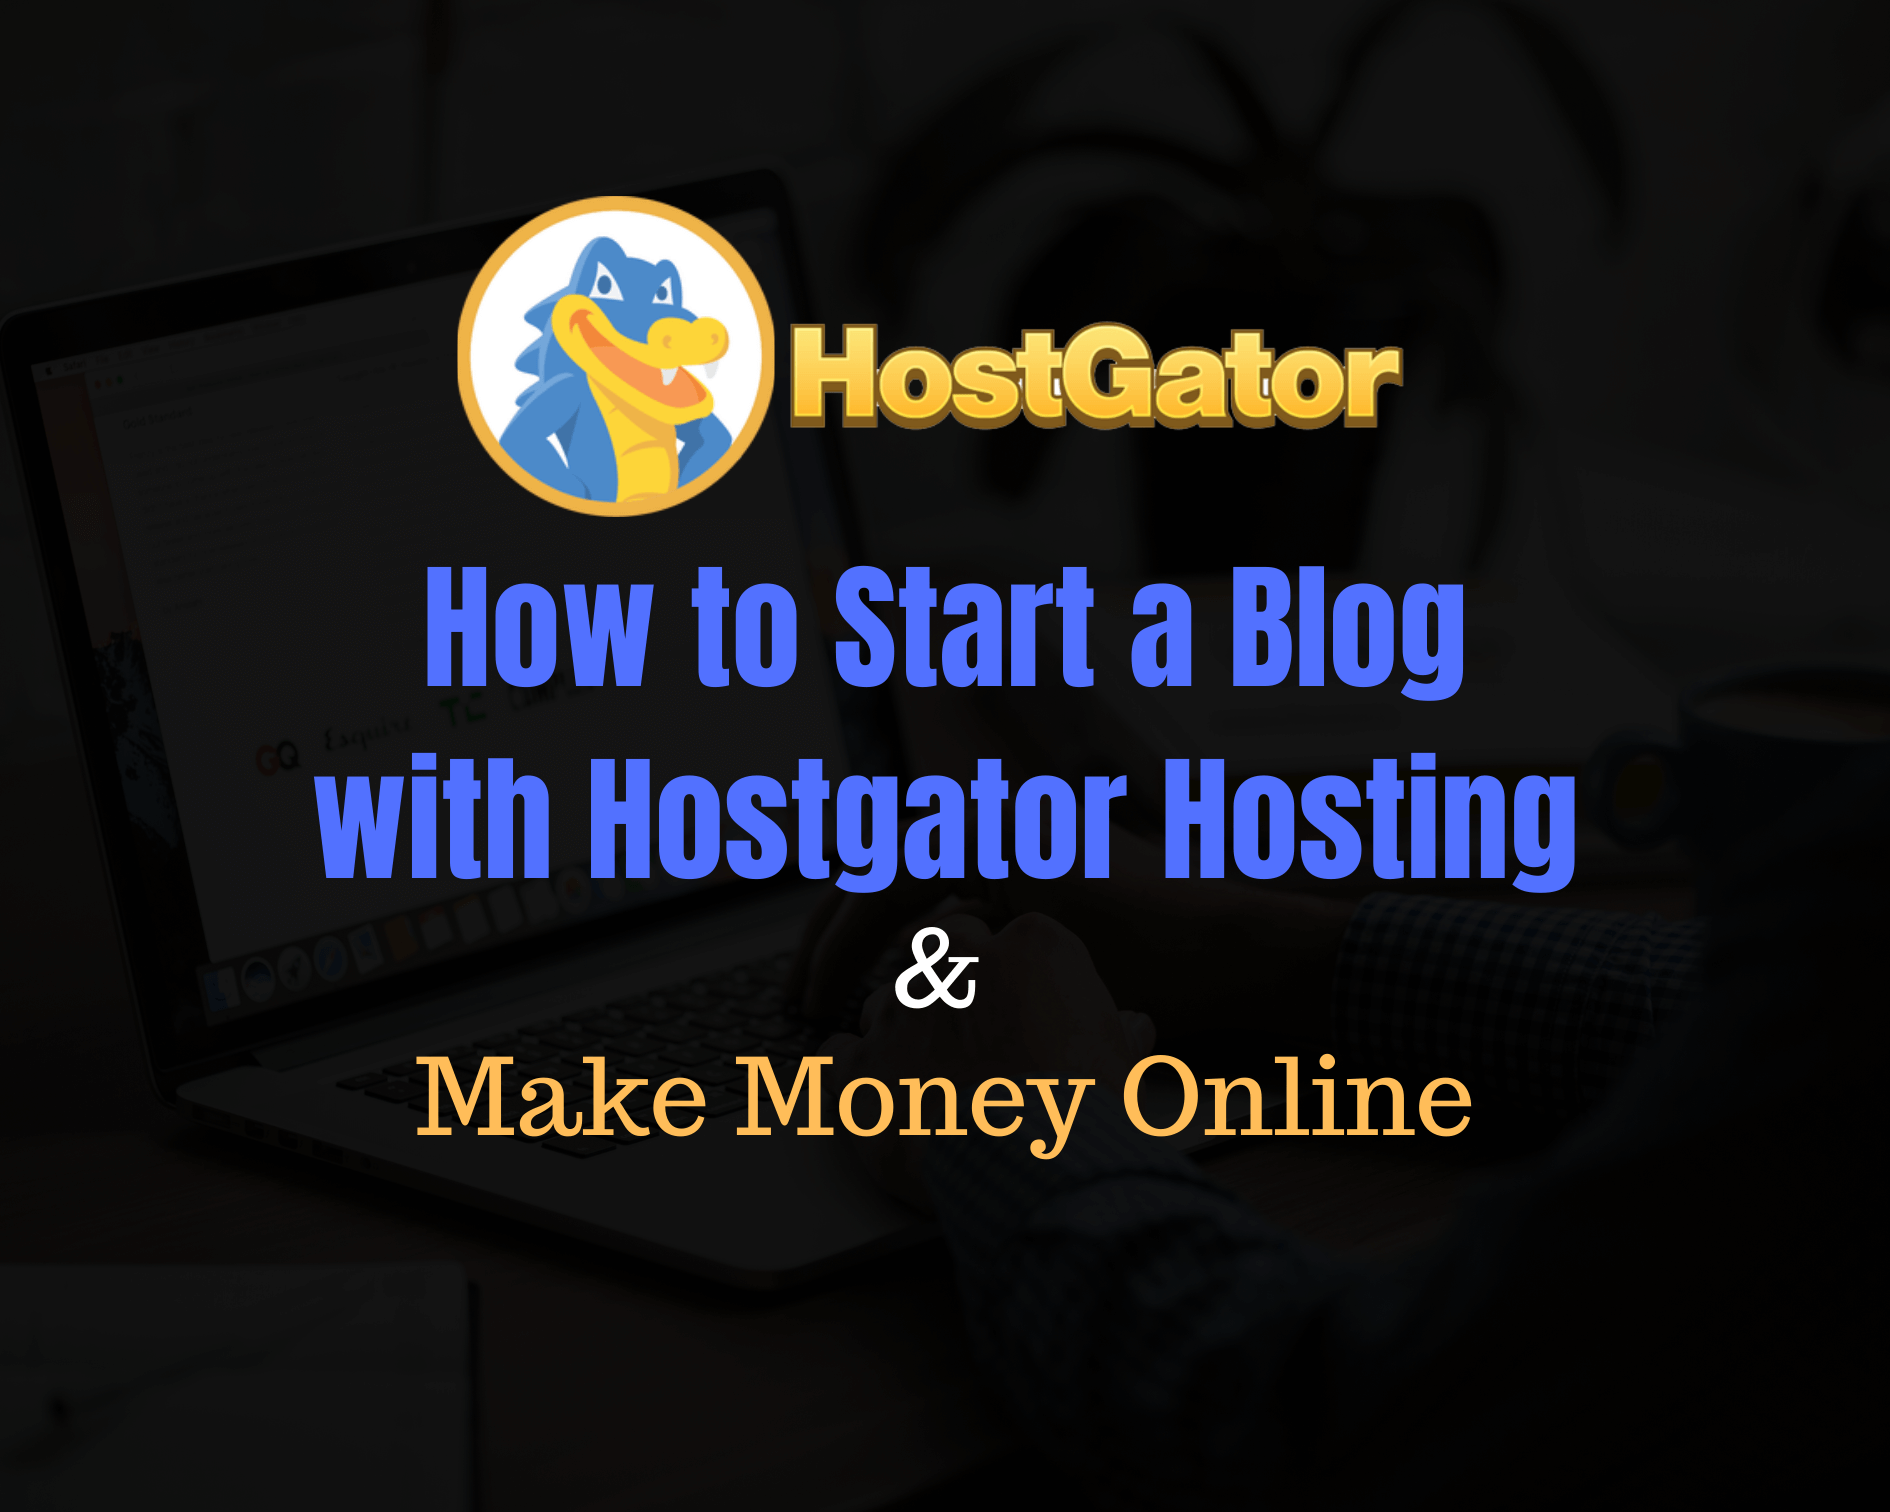 How to Start a Blog with Hostgator Hosting in 2020